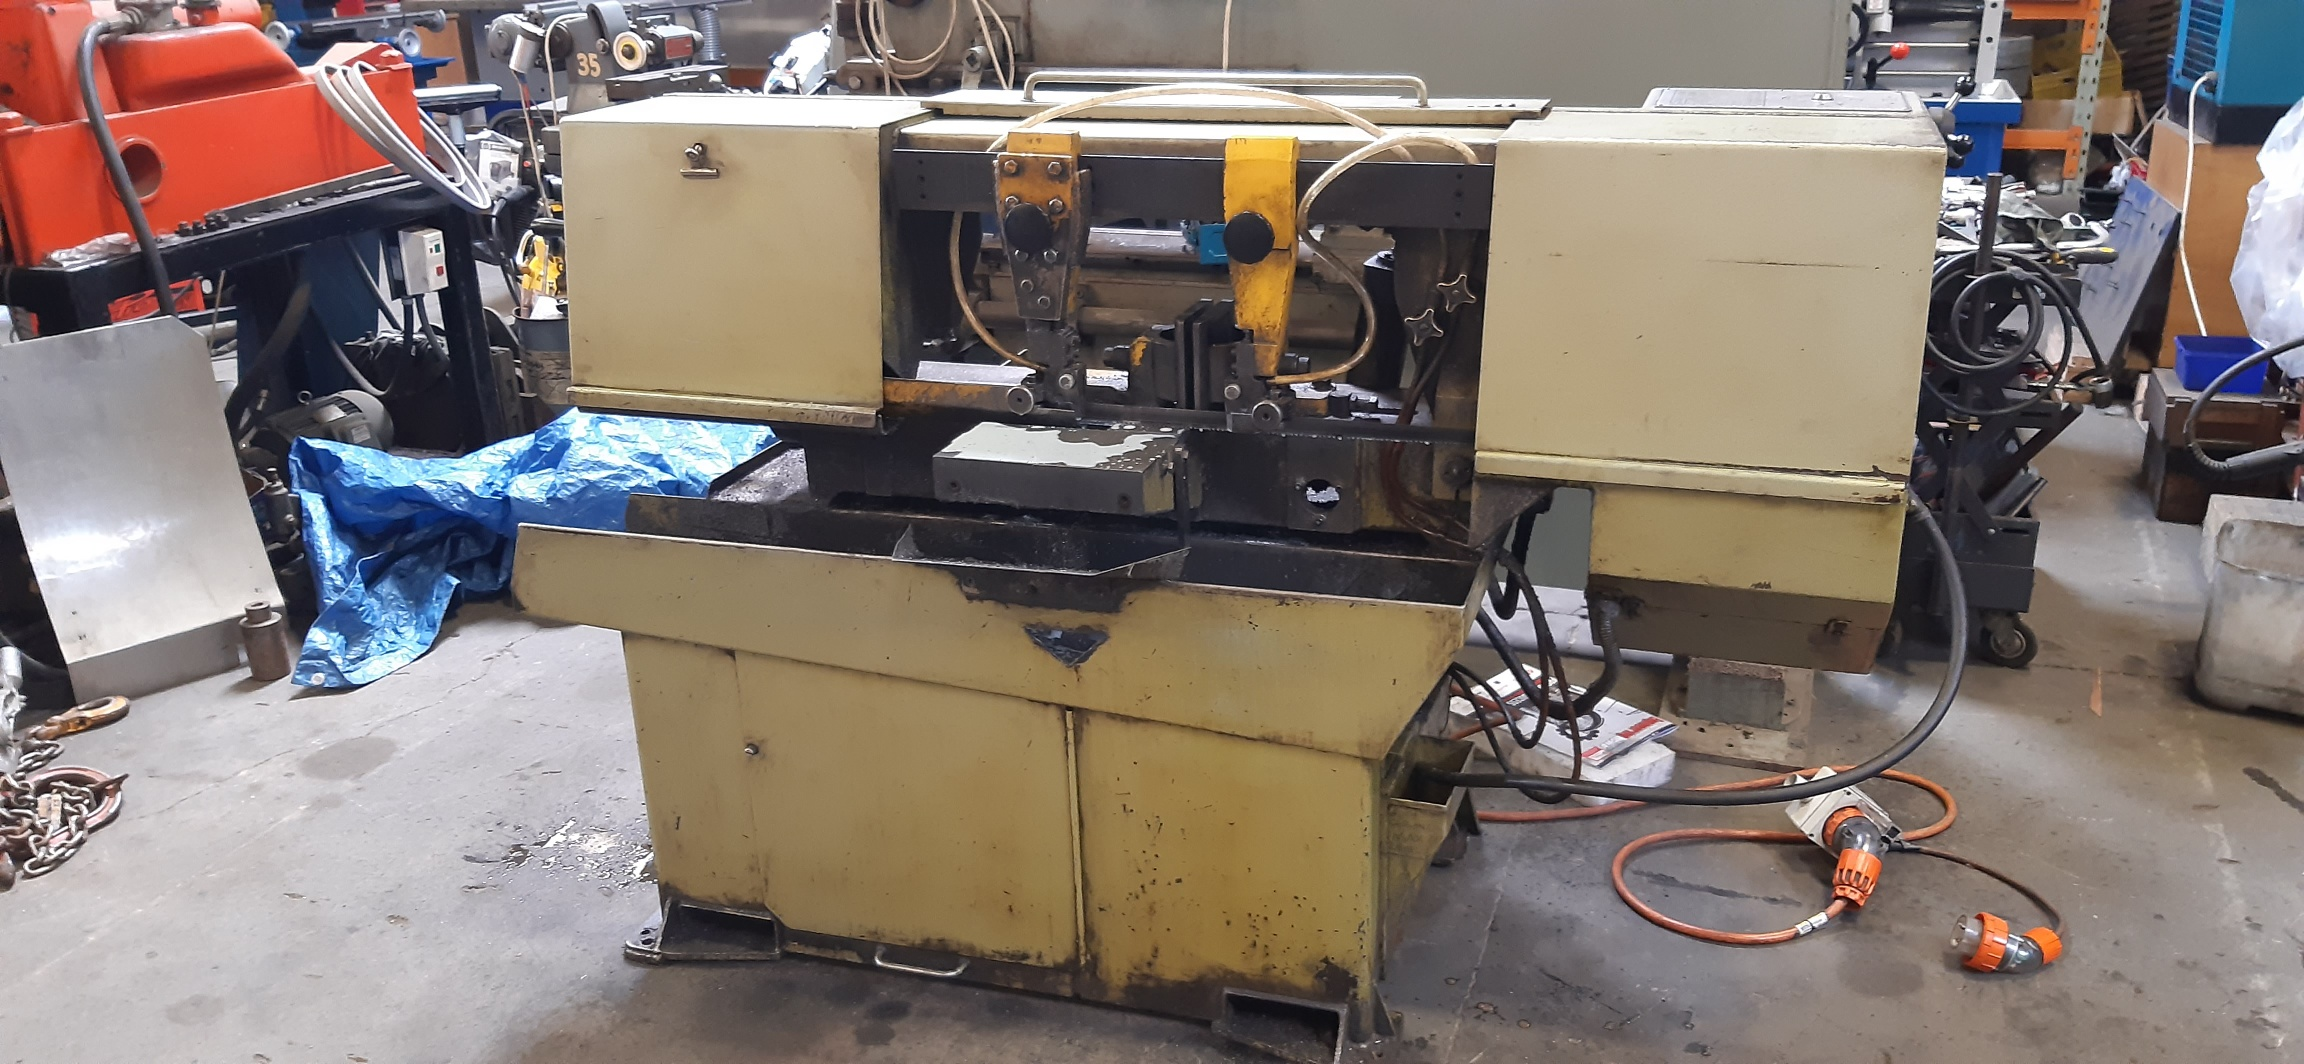 Bandsaw Startrite (England)250mm 3 phase semi auto, hydraulic vise, lift and blade tension